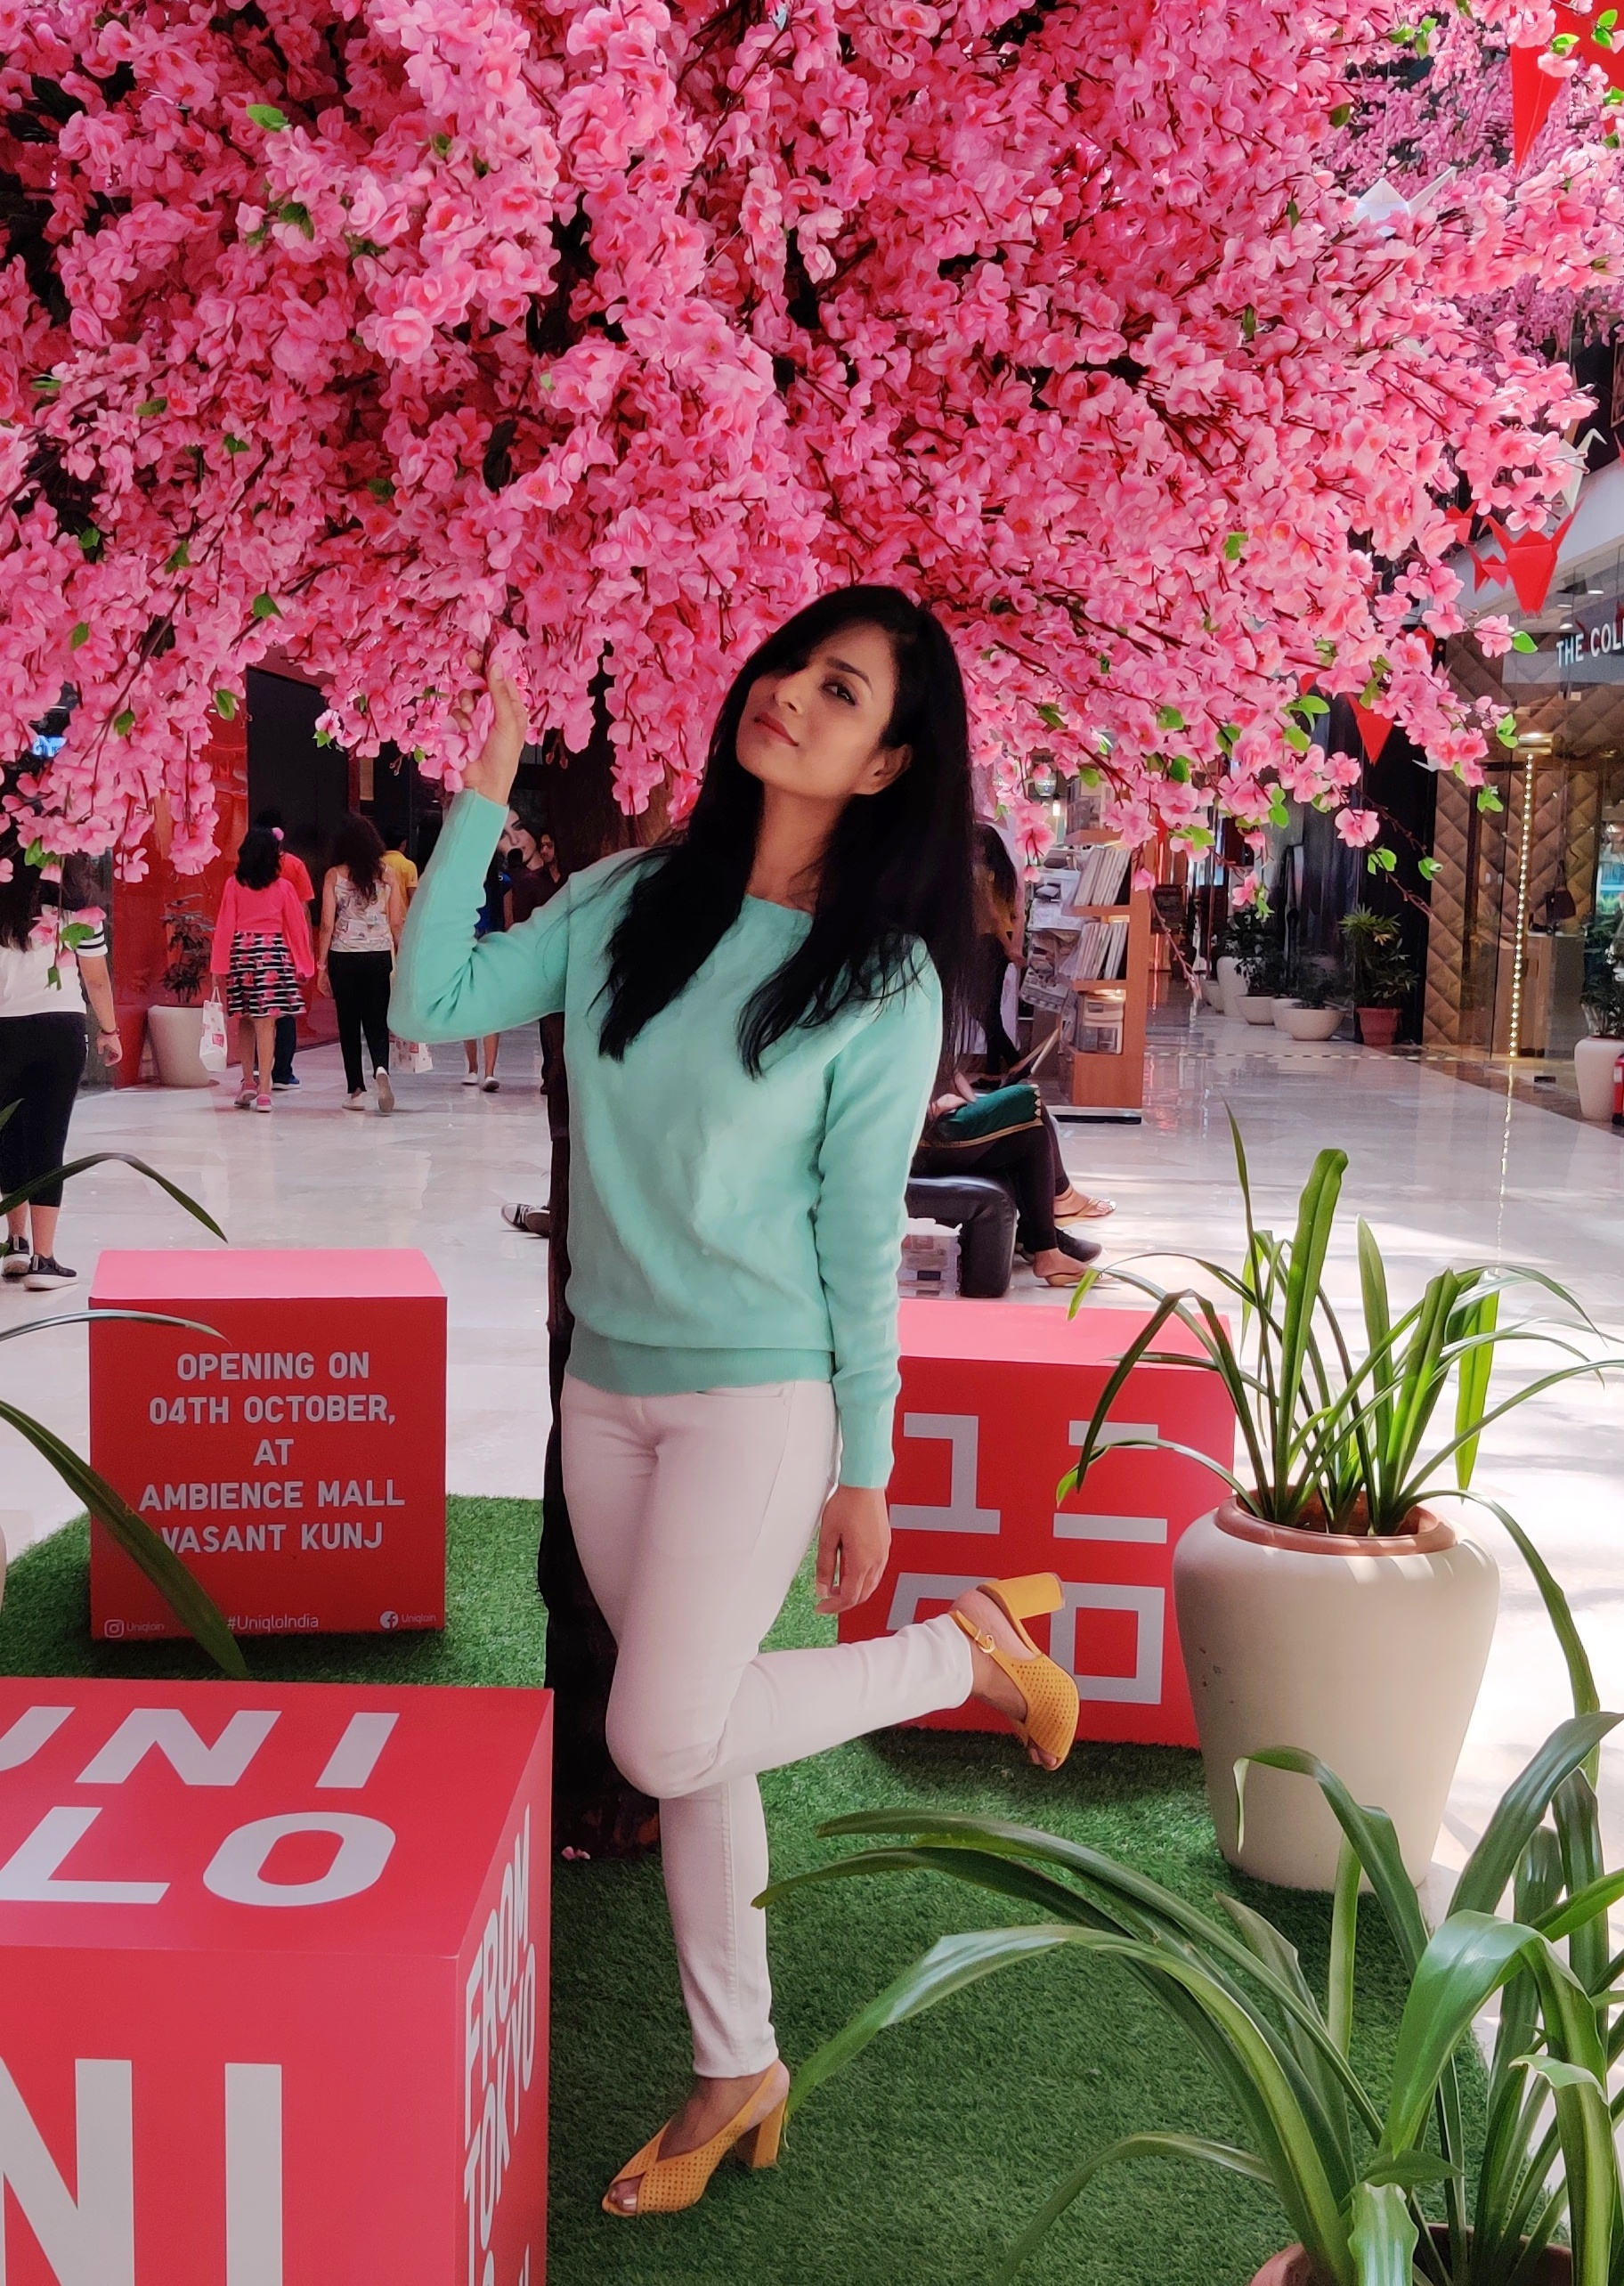 A-woman-standing-near-pink-flower-tree-in-white-skinny-jeans-mint-sweater